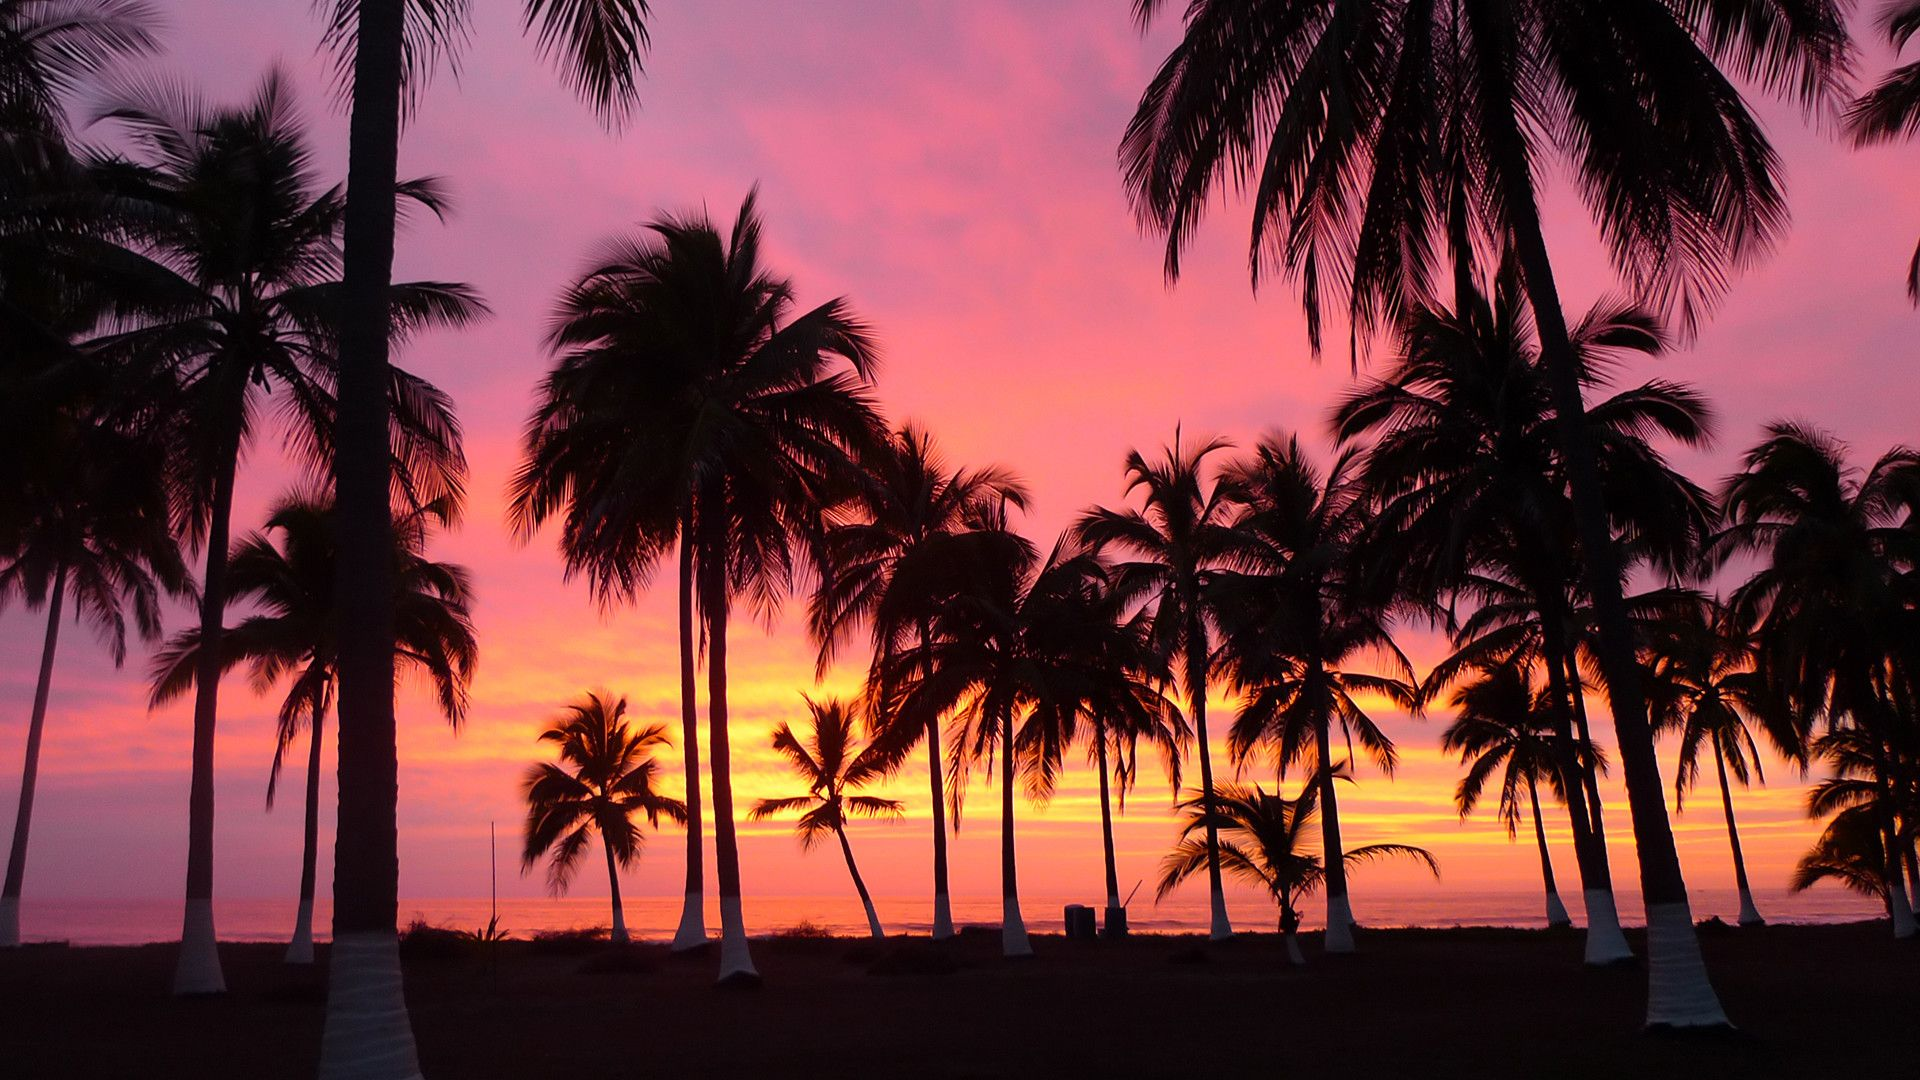 1920x1080 High Quality Palm Trees Wallpapers Susie Guajardo Tree Sunset Wallpaper Palm Trees Wallpaper Sunset Wallpaper